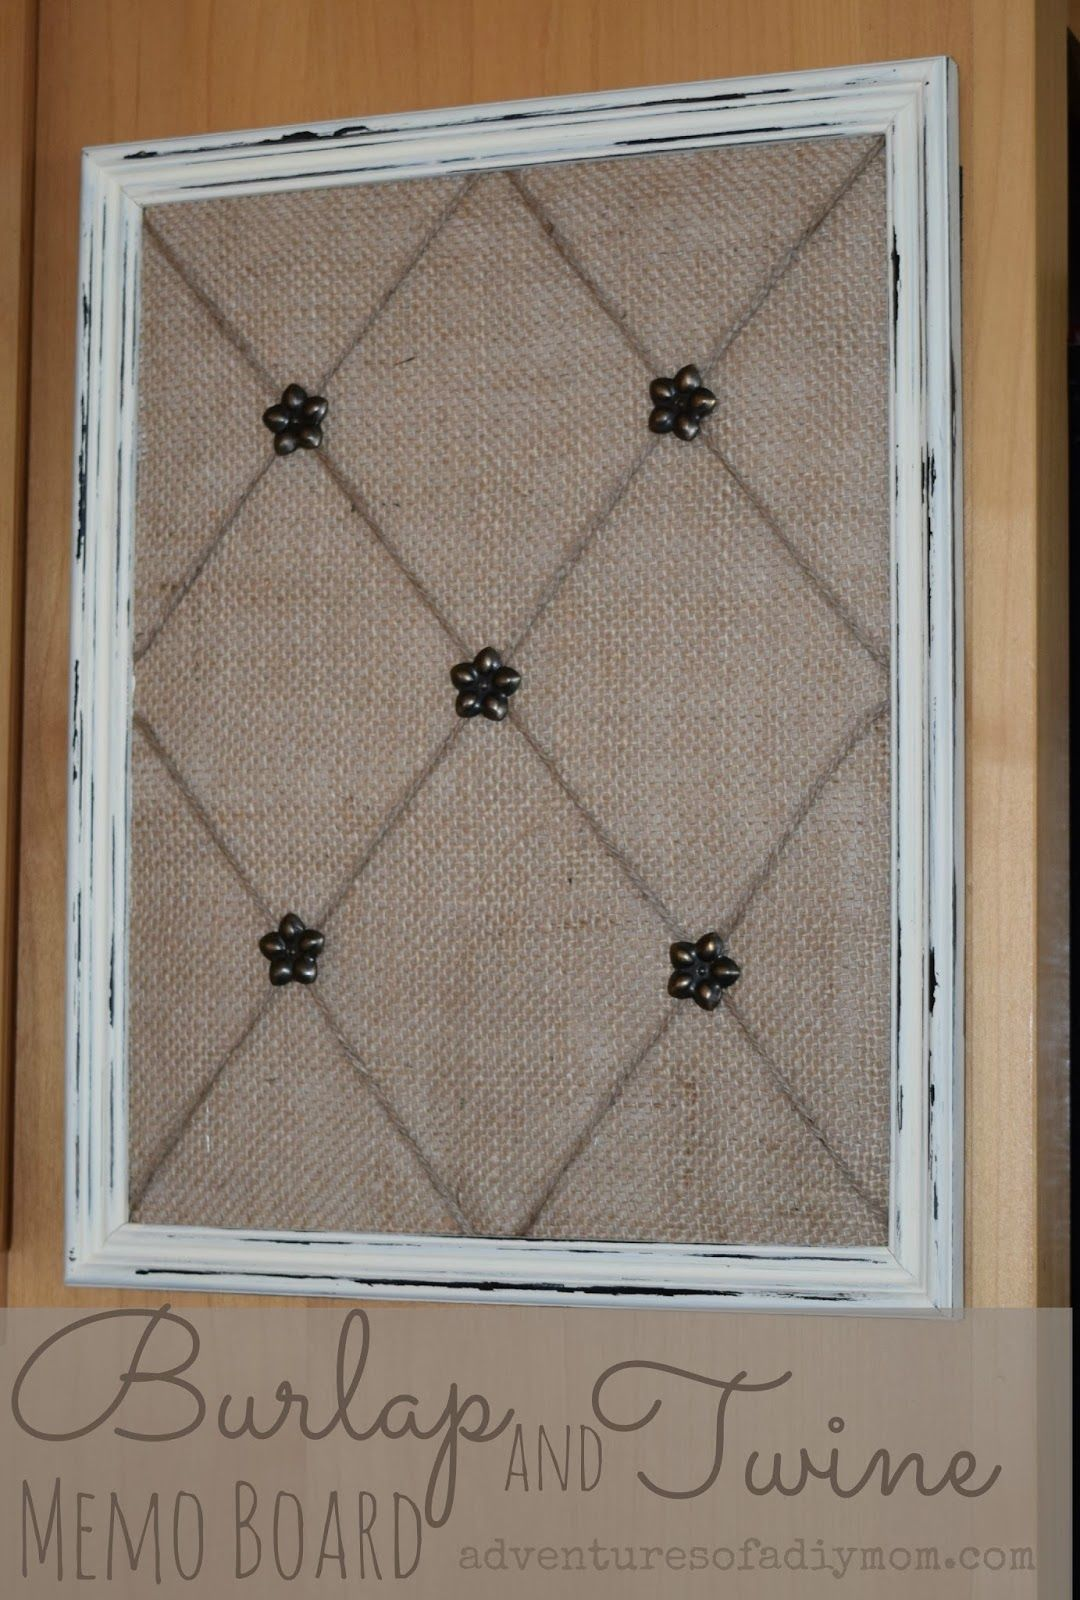 How to Make a Burlap and Twine Memo Board -   25 burlap crafts board ideas